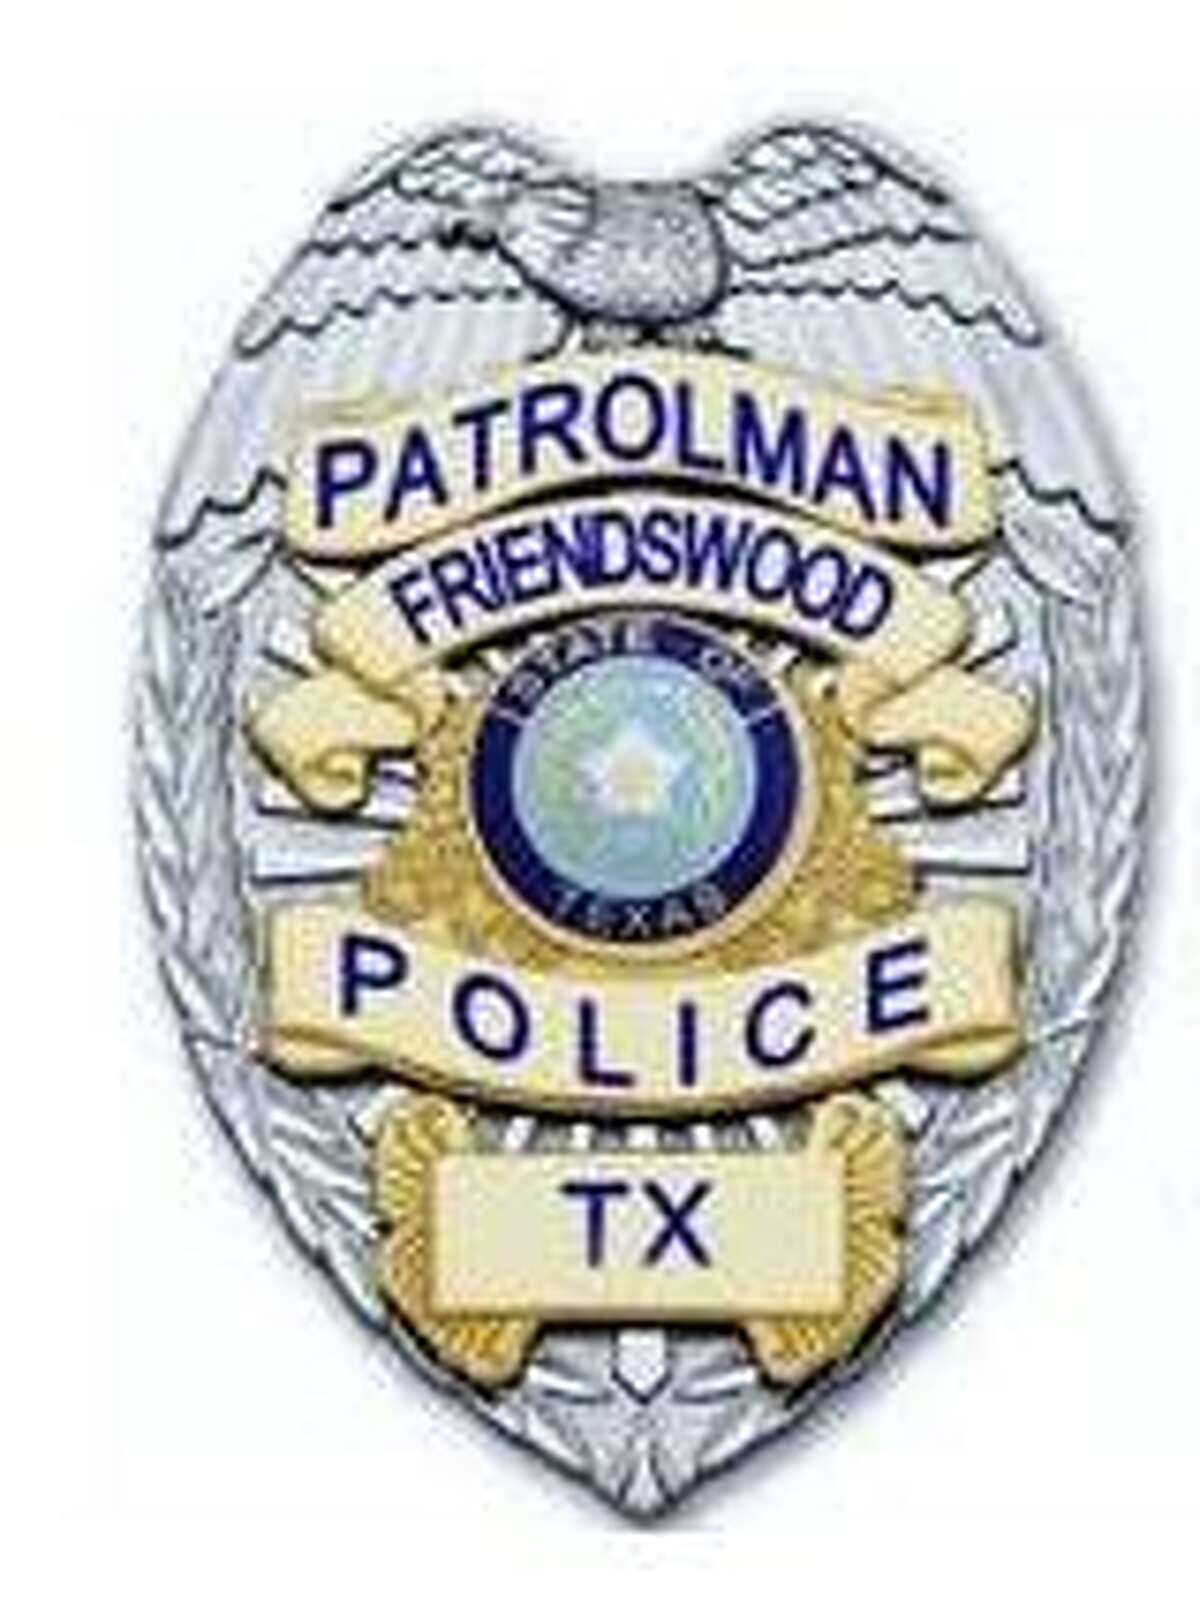 Friendswood police are working to determine if three burglary incidents in the West Ranch neighborhood and a fourth in nearby Friendswood Cove are related, according to a bulletin from the city's police department.